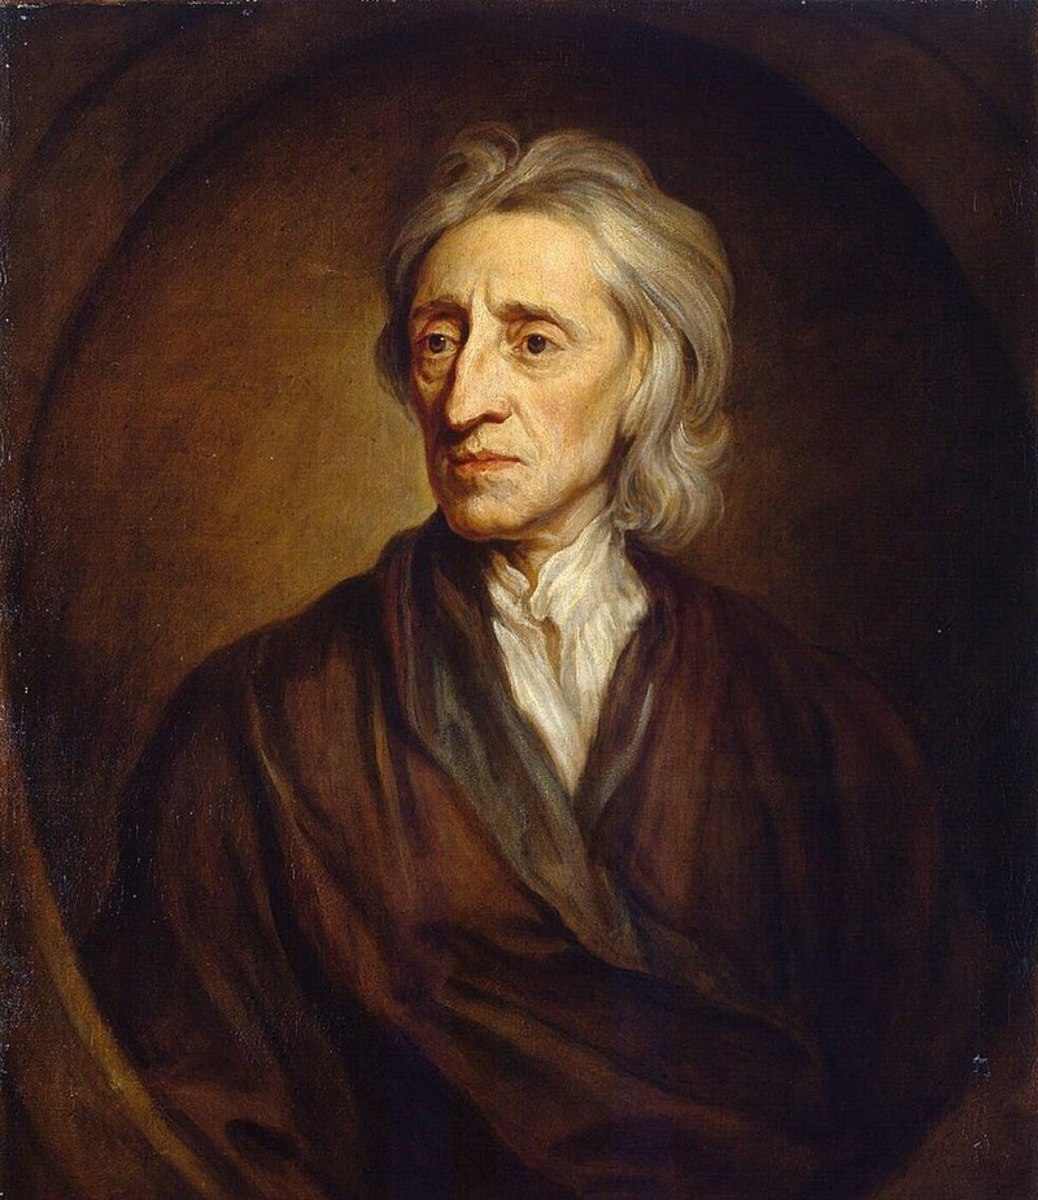 John Locke; a Seventeenth Century philosopher credited with many of the concepts introduced in the U.S. Constitution.